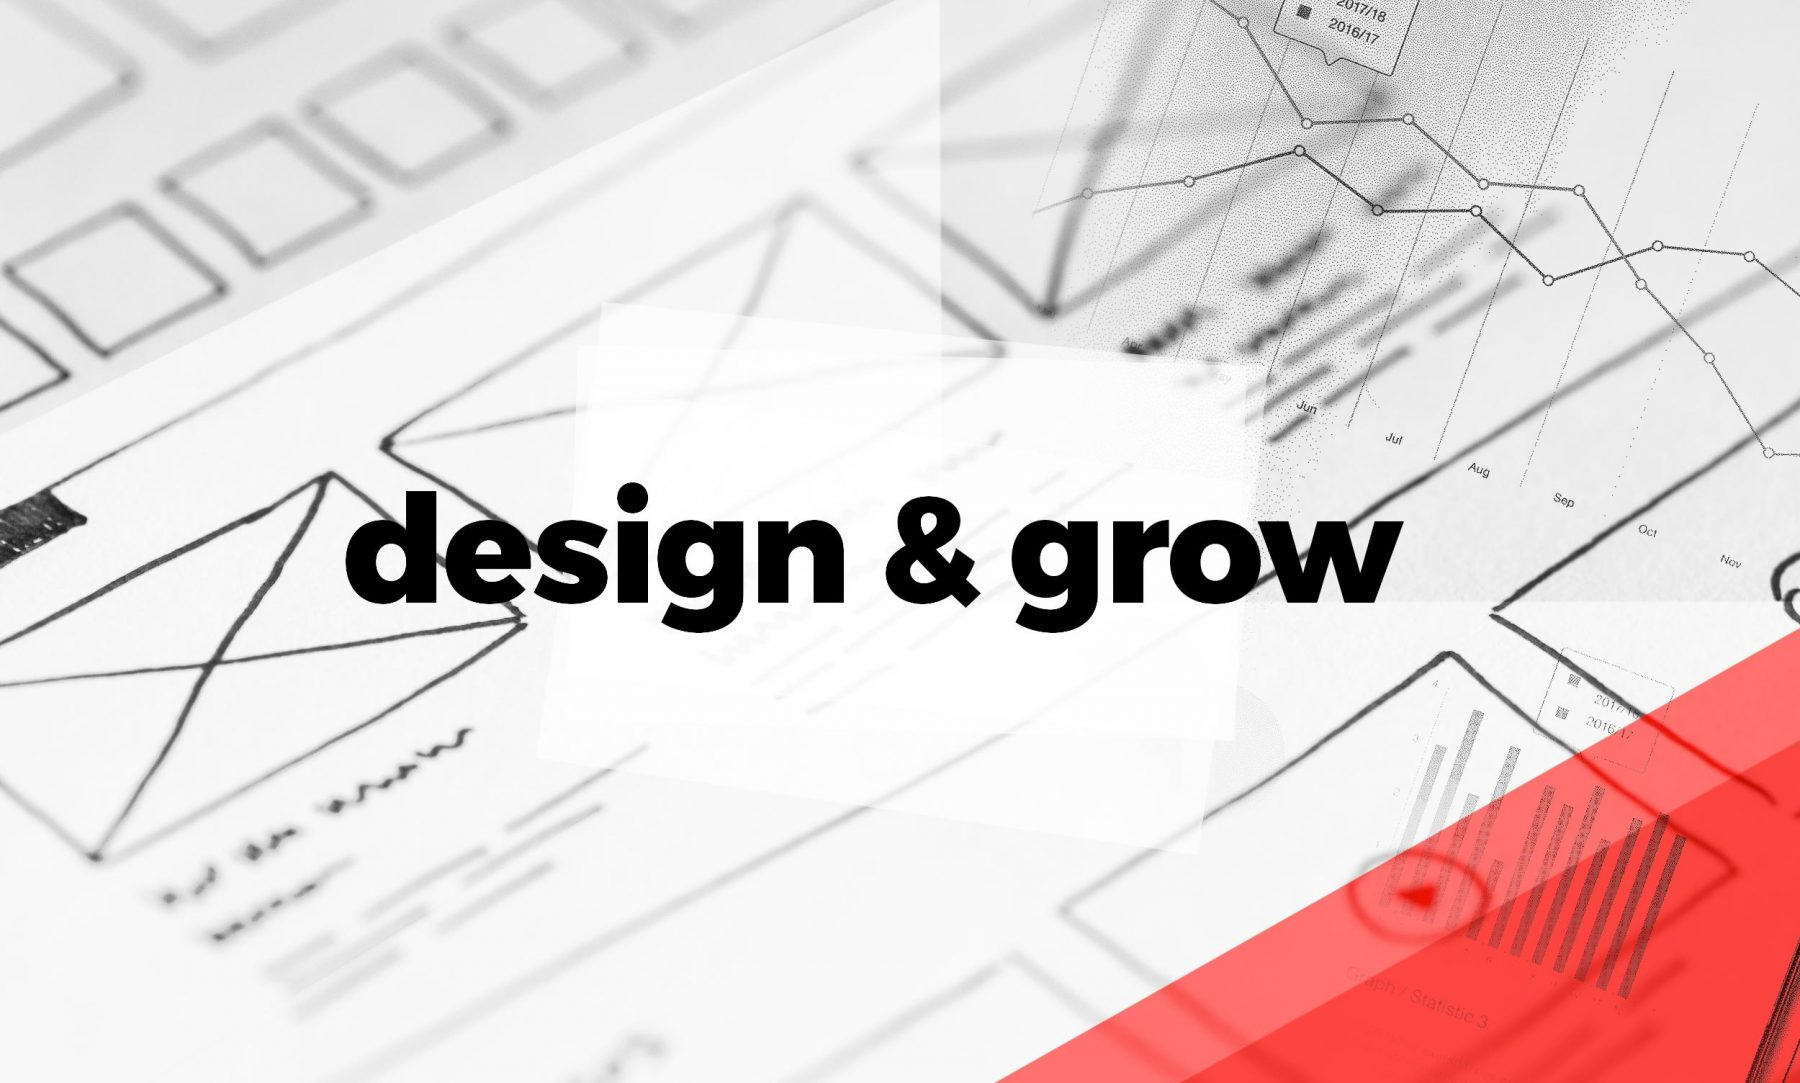 Mad reality - a digital design and marketing agency